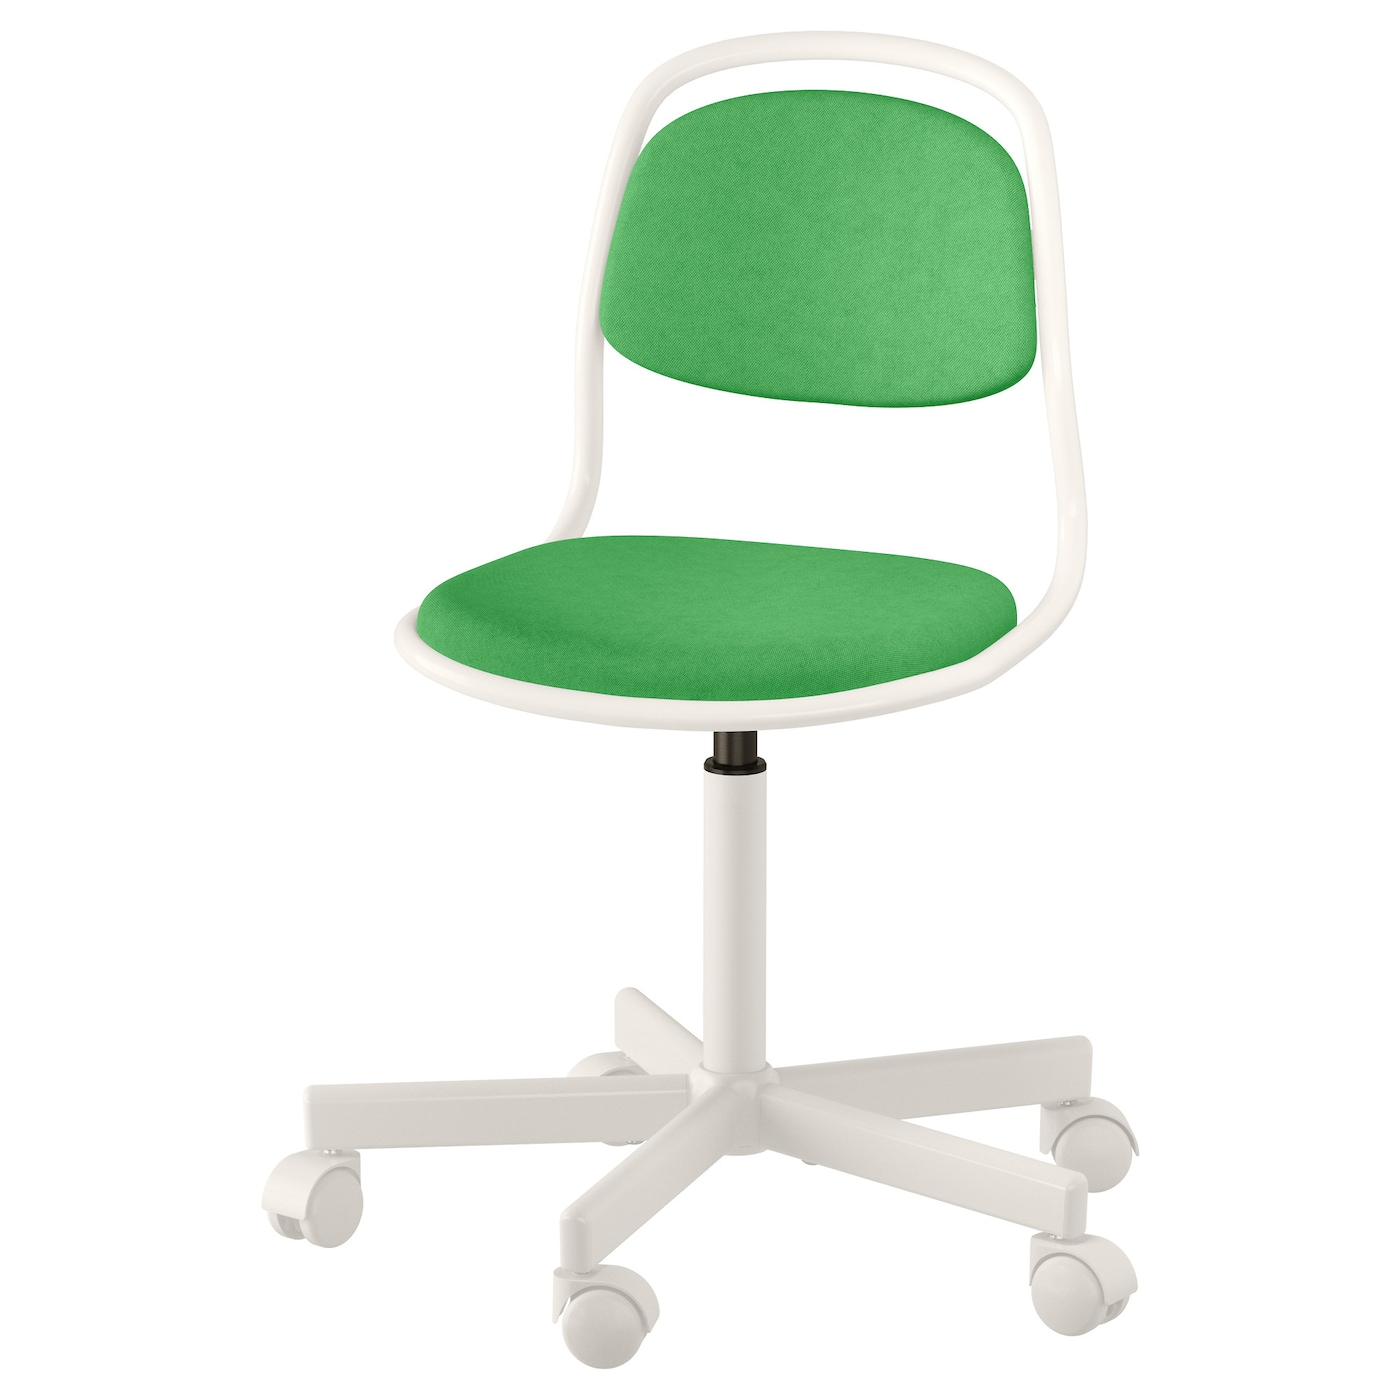 "–RFJ""LL Children s desk chair White vissle bright green IKEA"